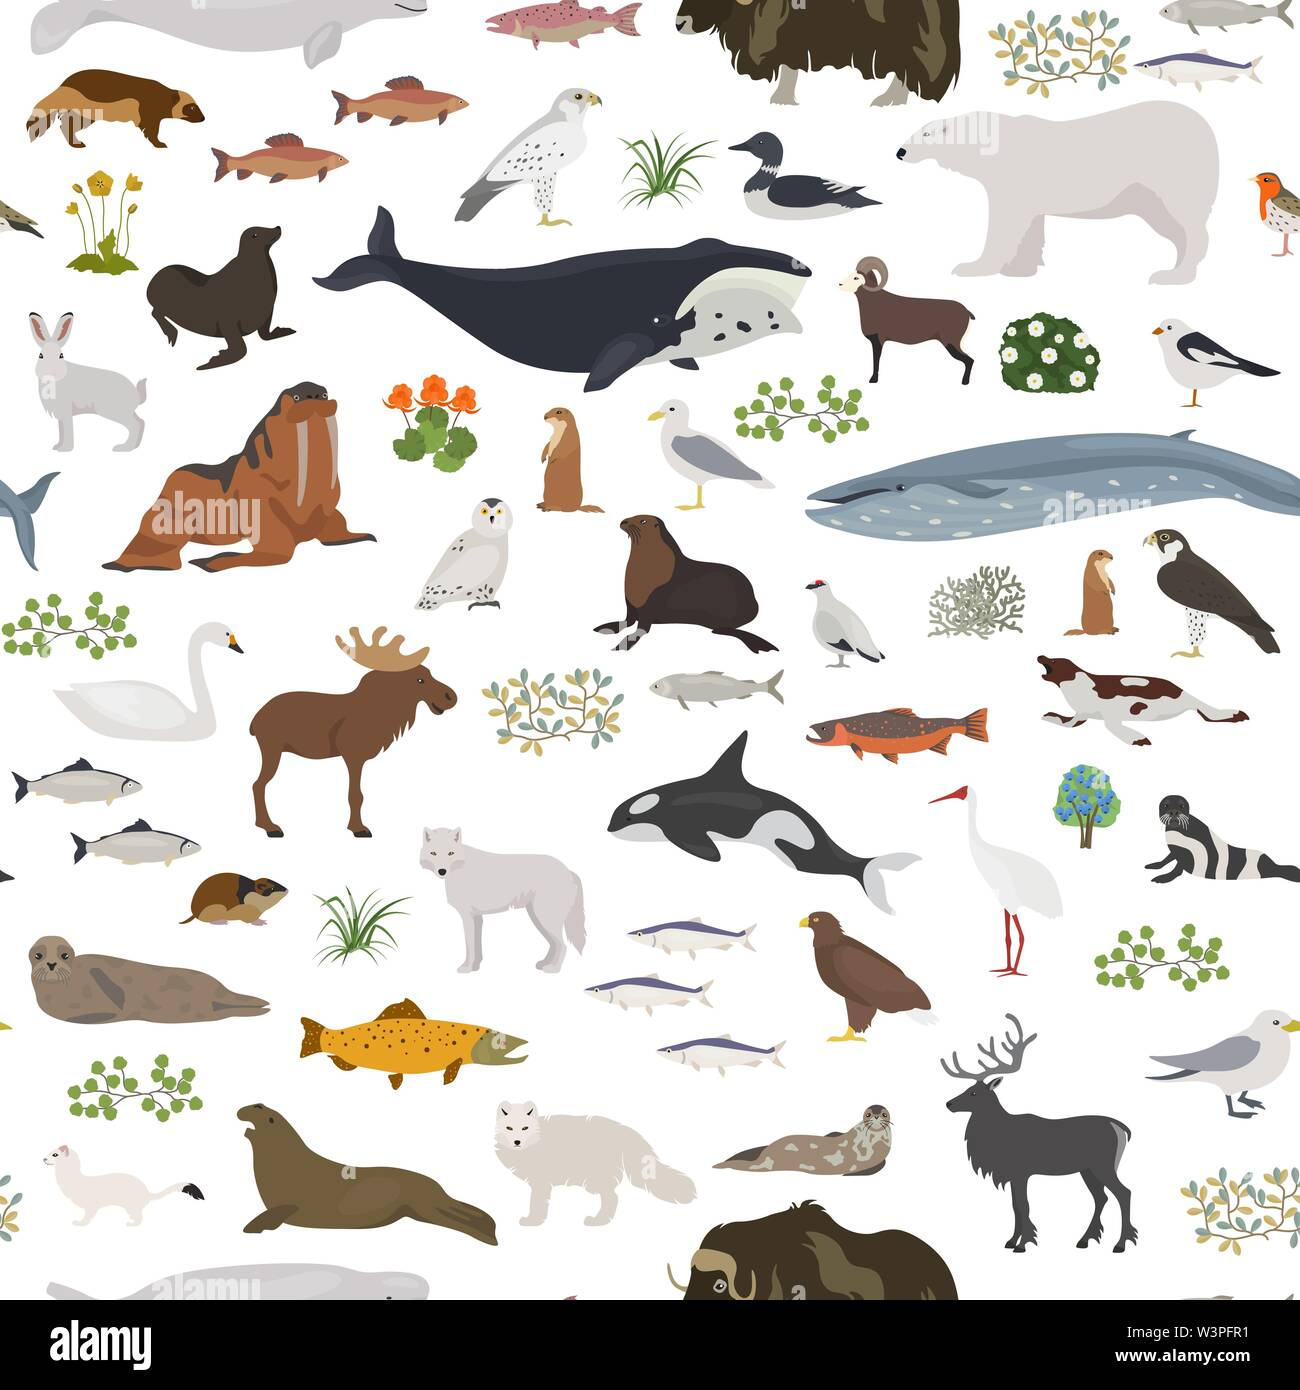 Tundra biome. Carte du monde de l'écosystème terrestre. Les animaux de l'Arctique, les oiseaux, les poissons et les plantes seamless pattern design. Vector illustration Photo Stock